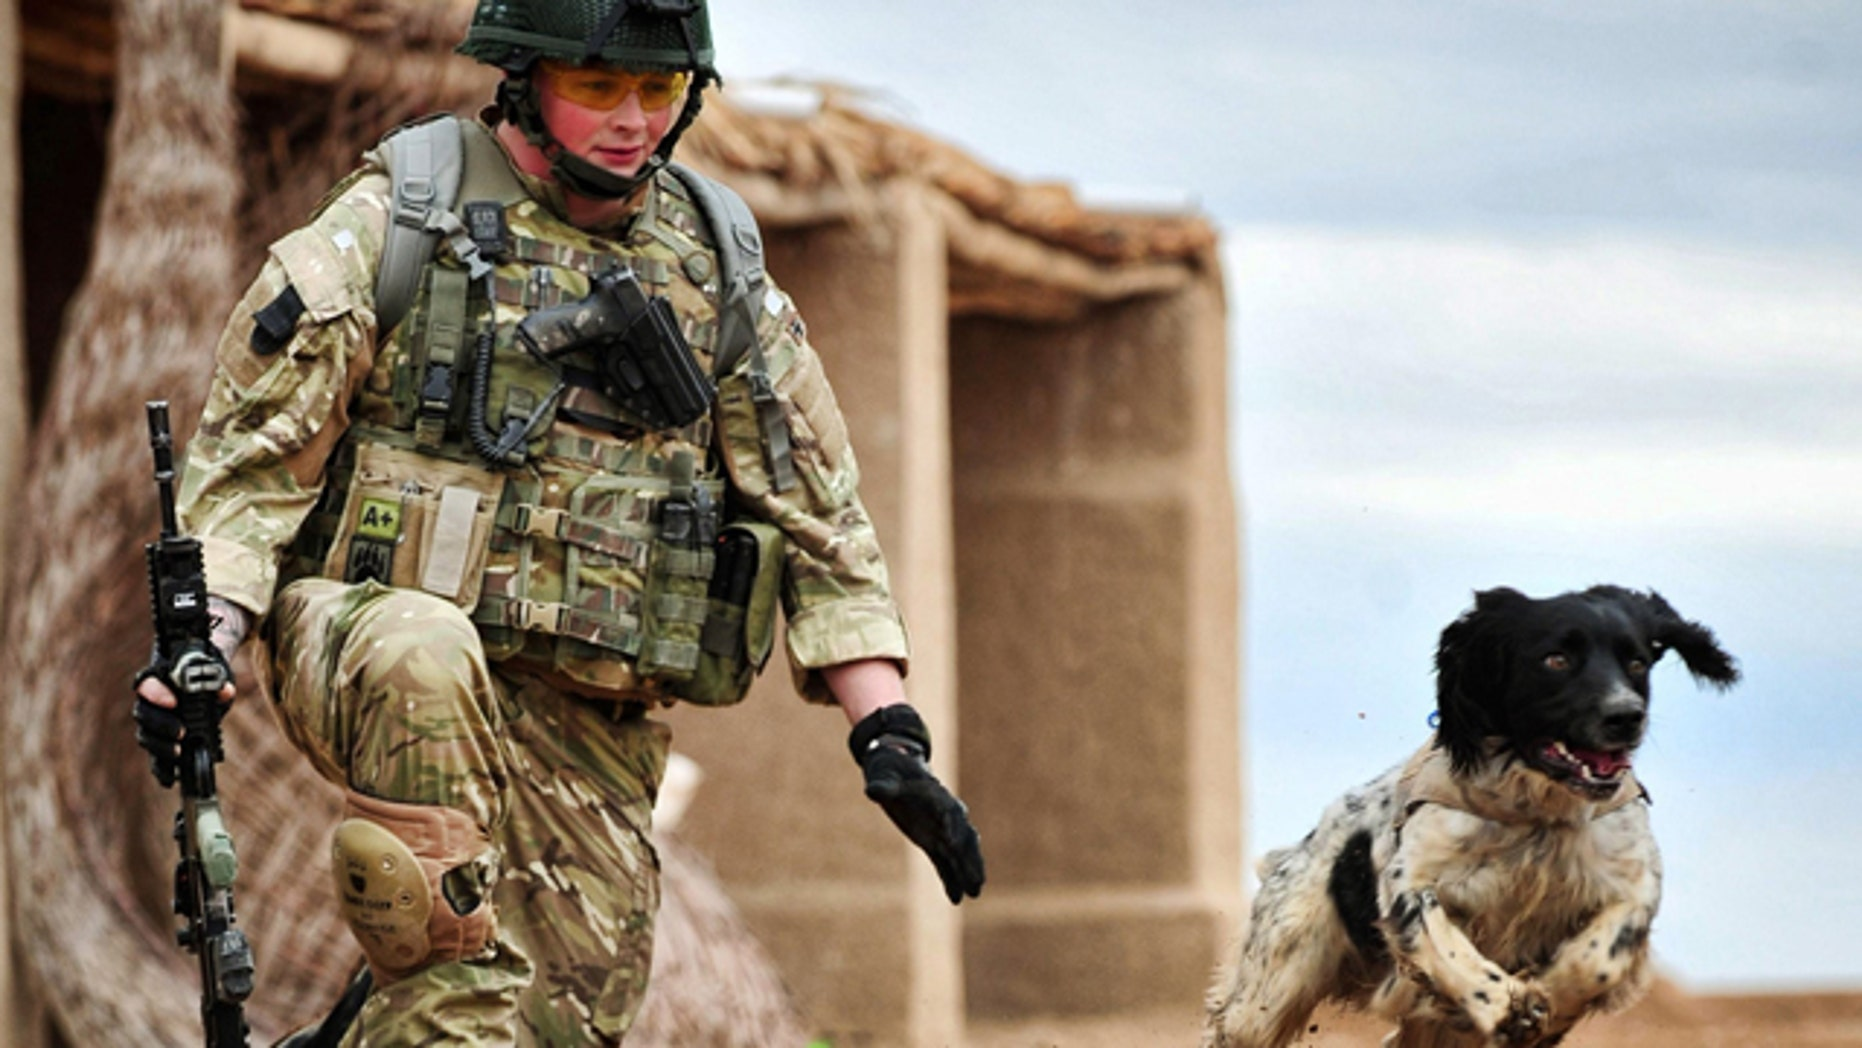 In this undated image made available in London by the Ministry of Defence,  Lance Corporal Liam Tasker trains with his Military Working Dog, Theo,  in Camp Bastion, Afghanistan. The body of Lance Corporal Tasker, a dog handler with the Royal Army Veterinary Corps who was killed in a firefight with insurgents in Helmand Province is to be repatriated to Britain, Thursday March 10, 2011, along with Theo, his bomb-sniffing springer spaniel, who suffered a fatal seizure hours later at a British army base